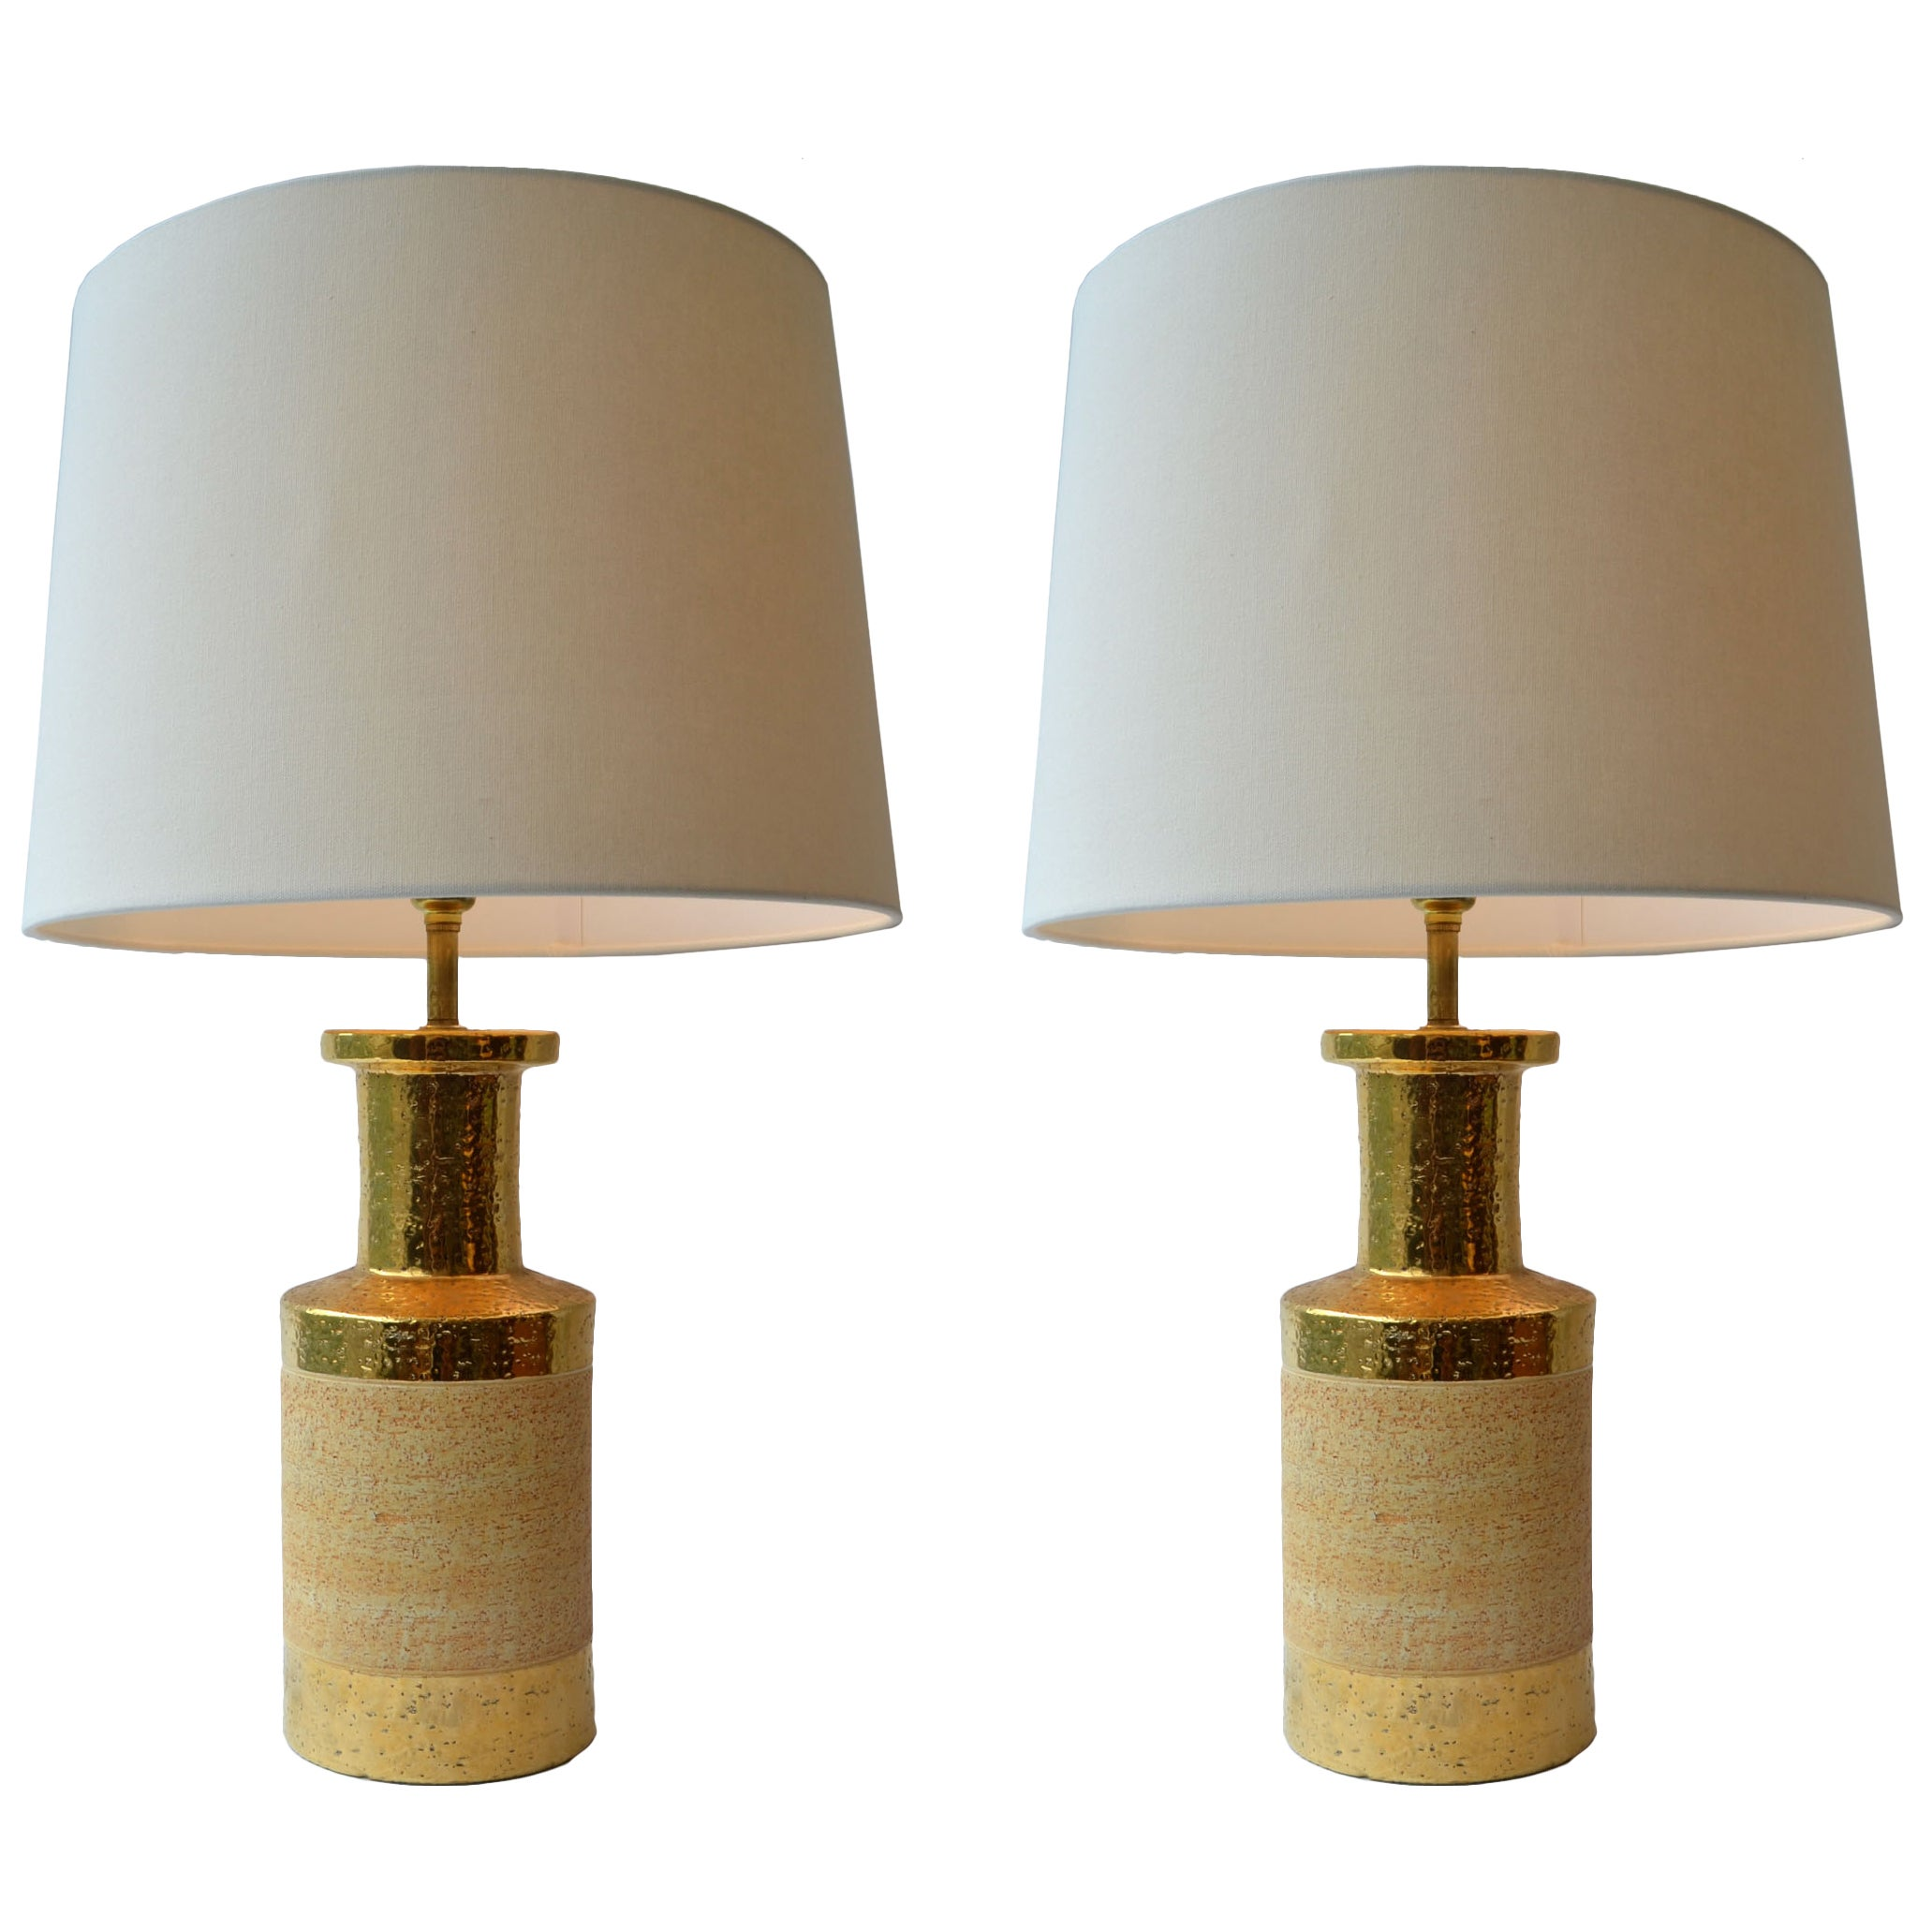 Single Ceramic Table Lamp By Tye Of California, Usa, Dated